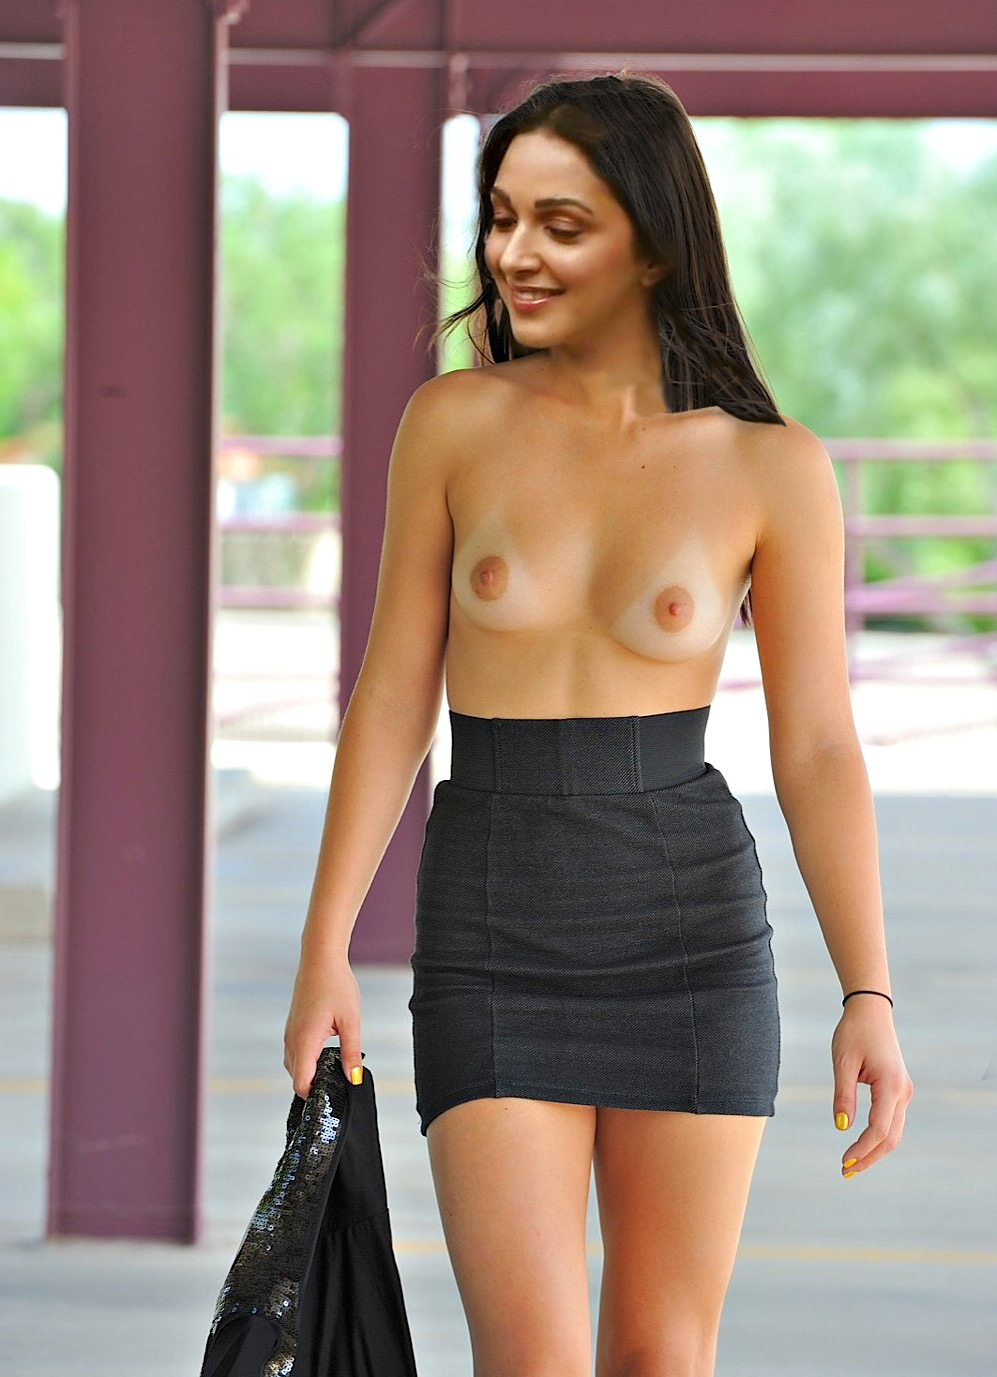 Hot girls in skirt and naked women photos